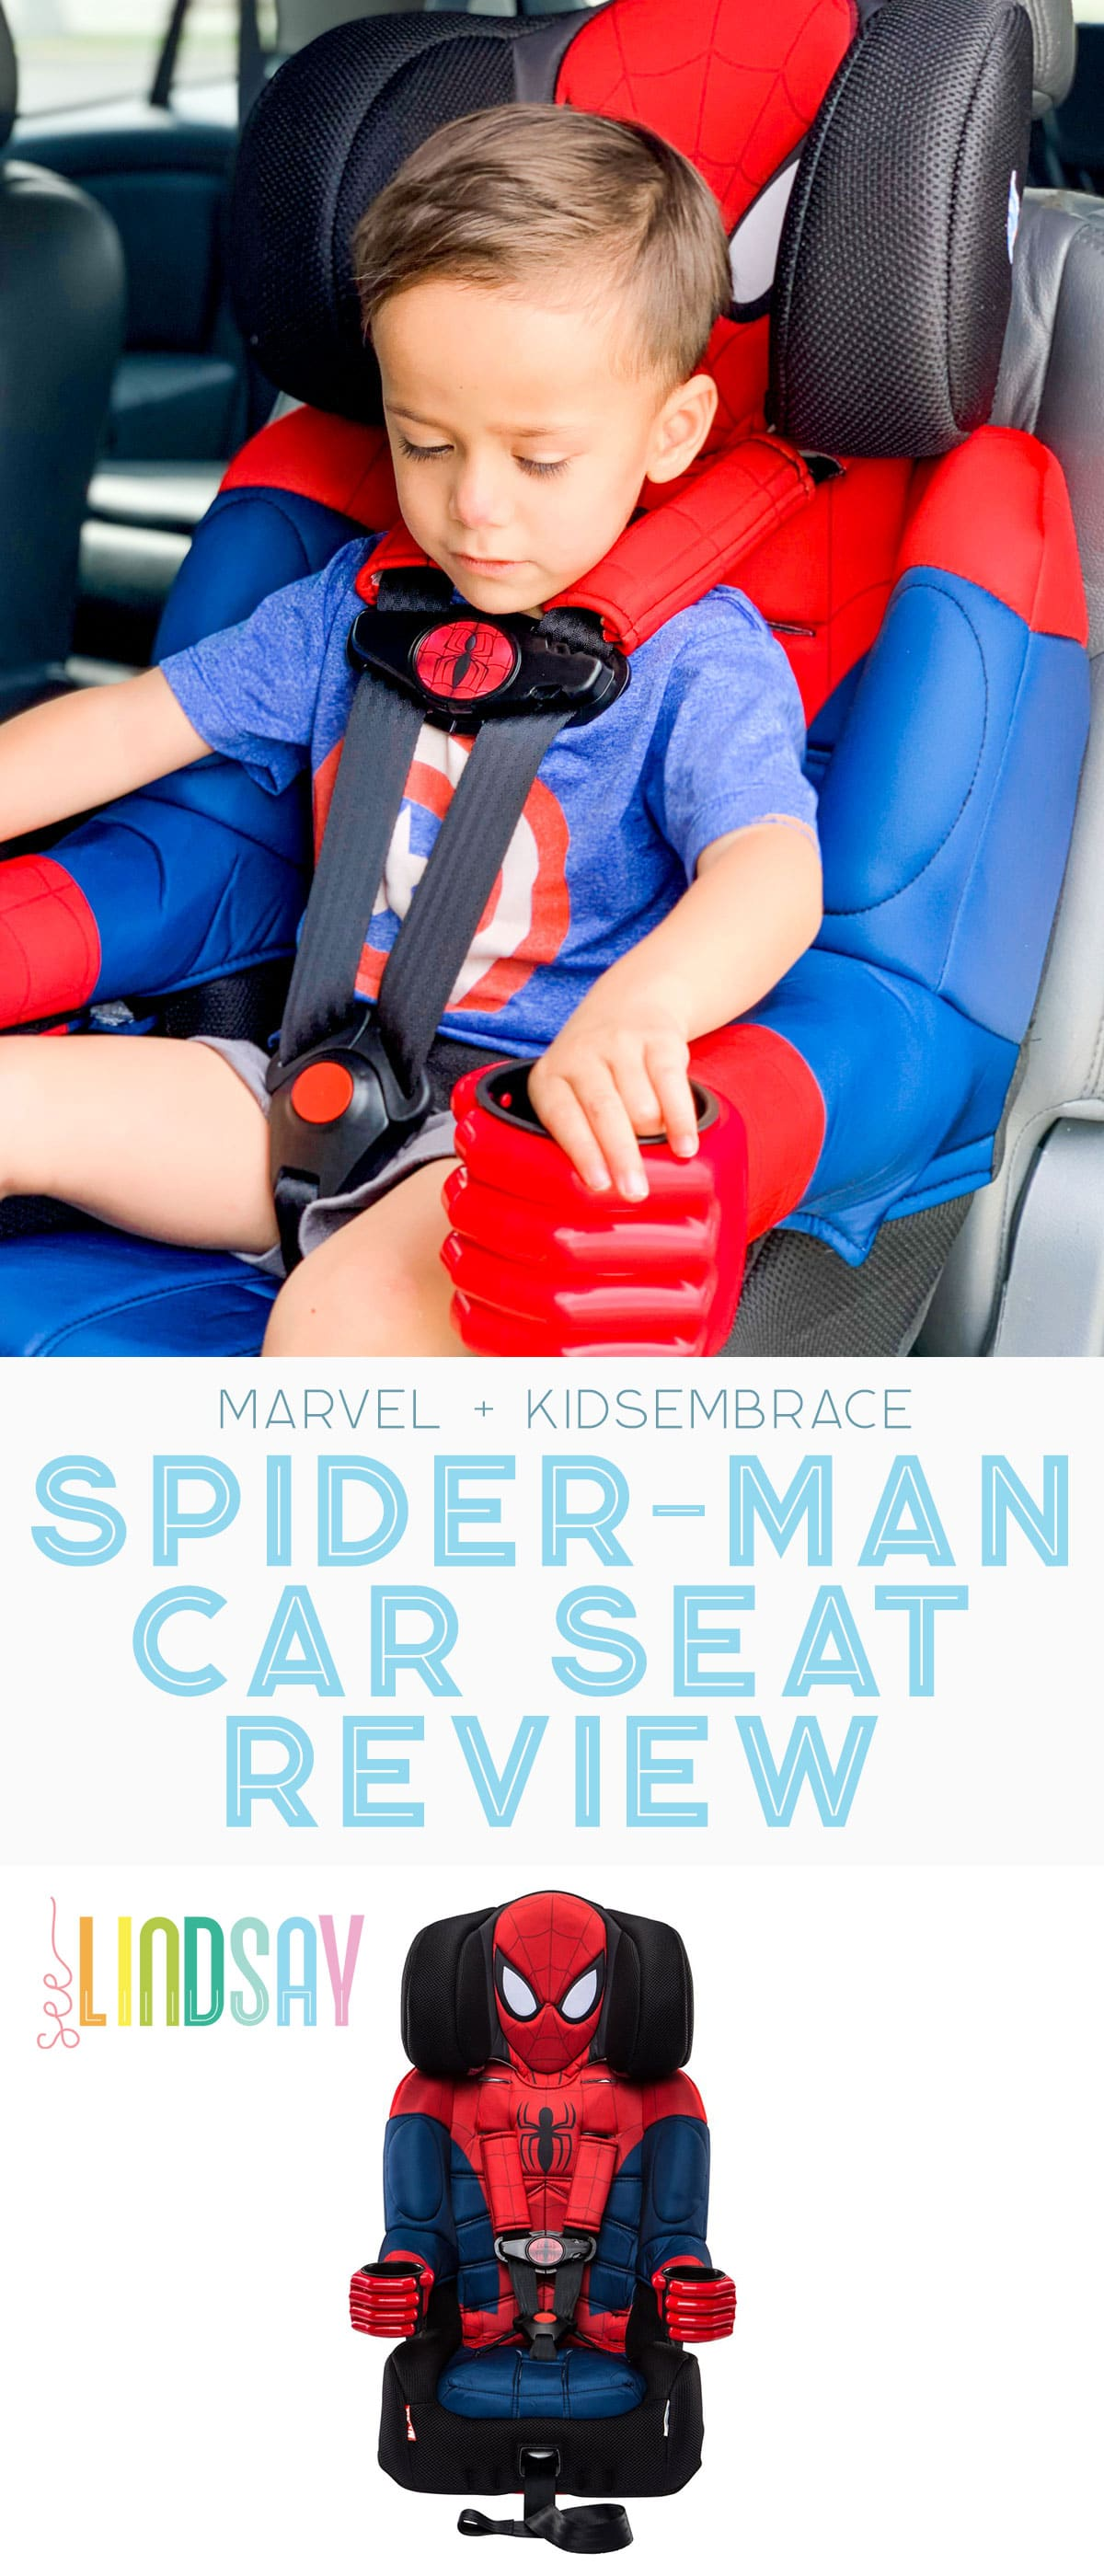 spider-man car seat review